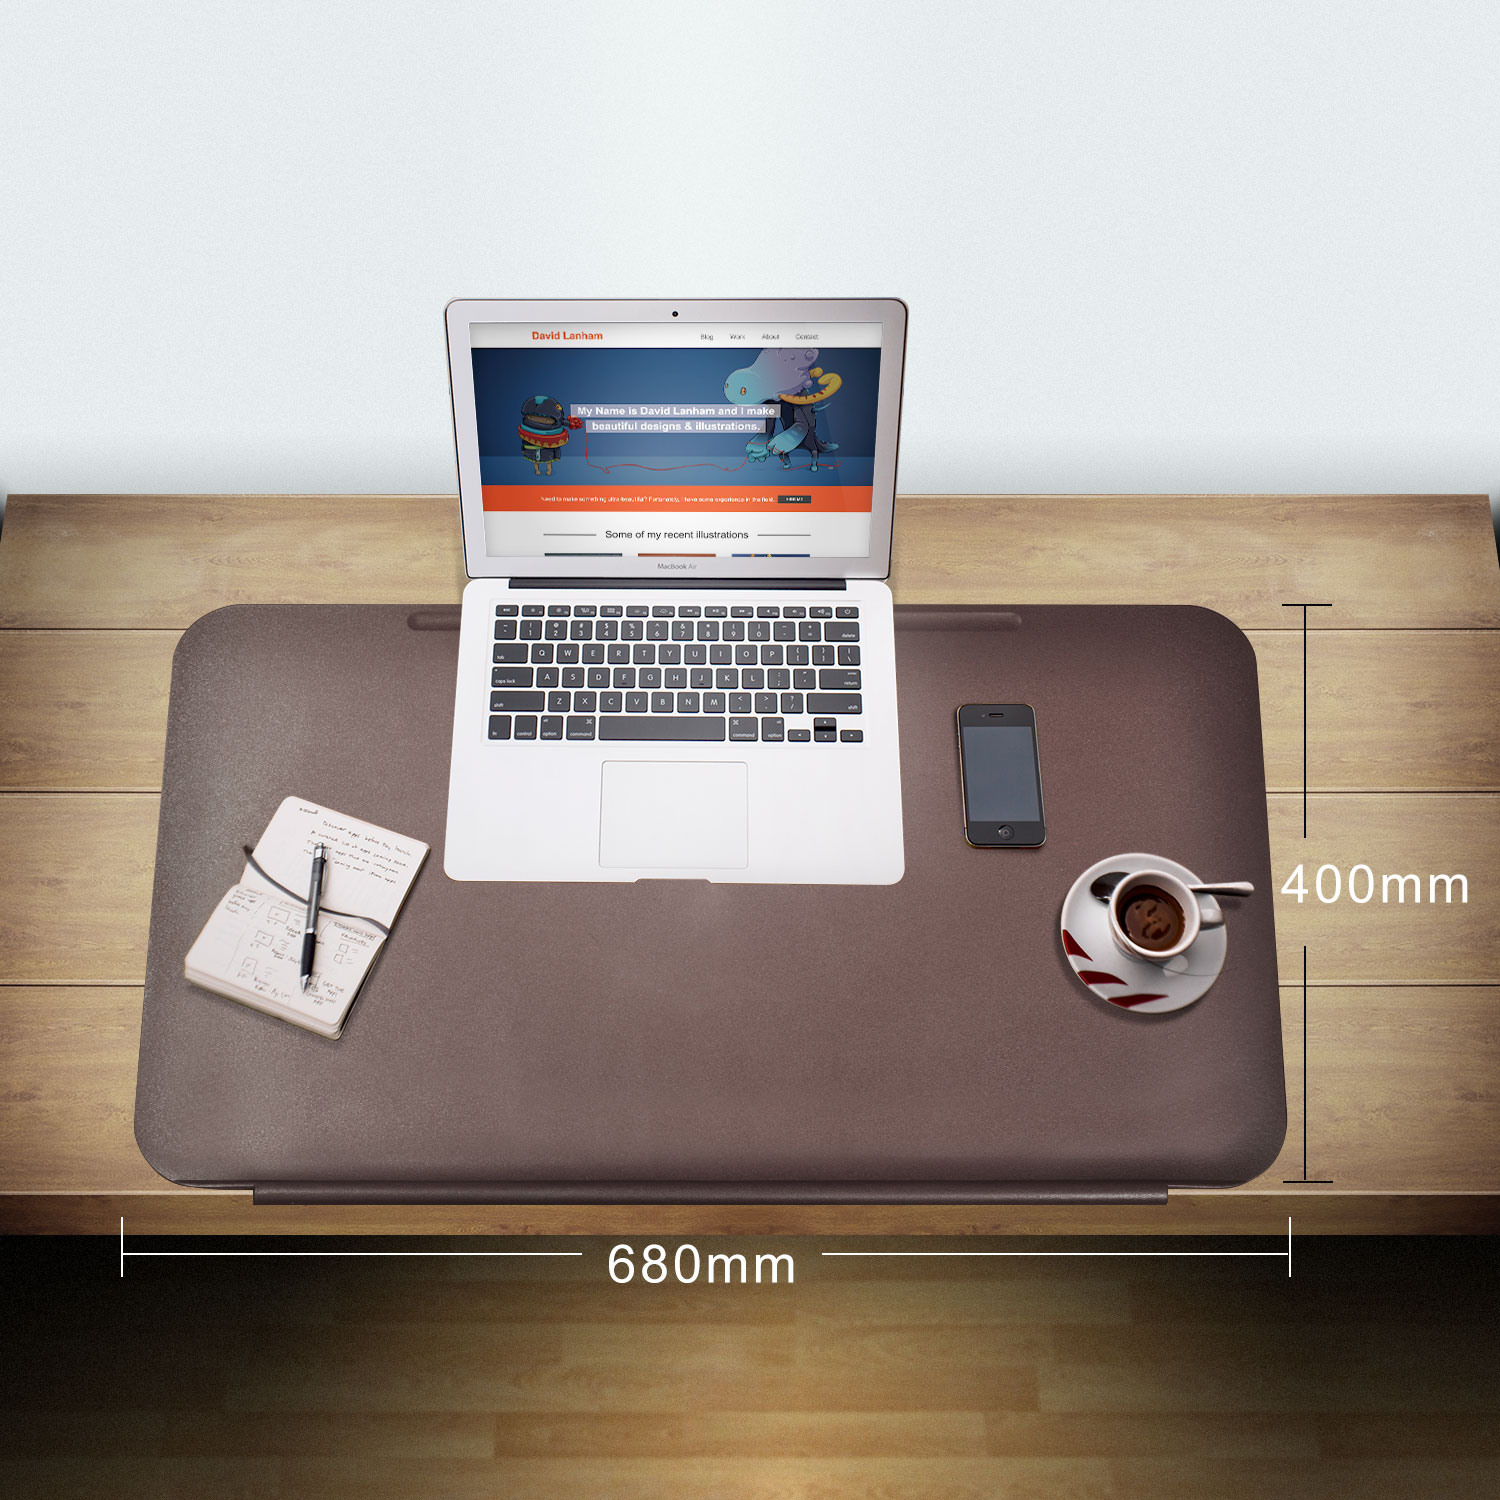 Tpu Desk Pads With Fixation Lip Comfortable Desktop Protector Mat